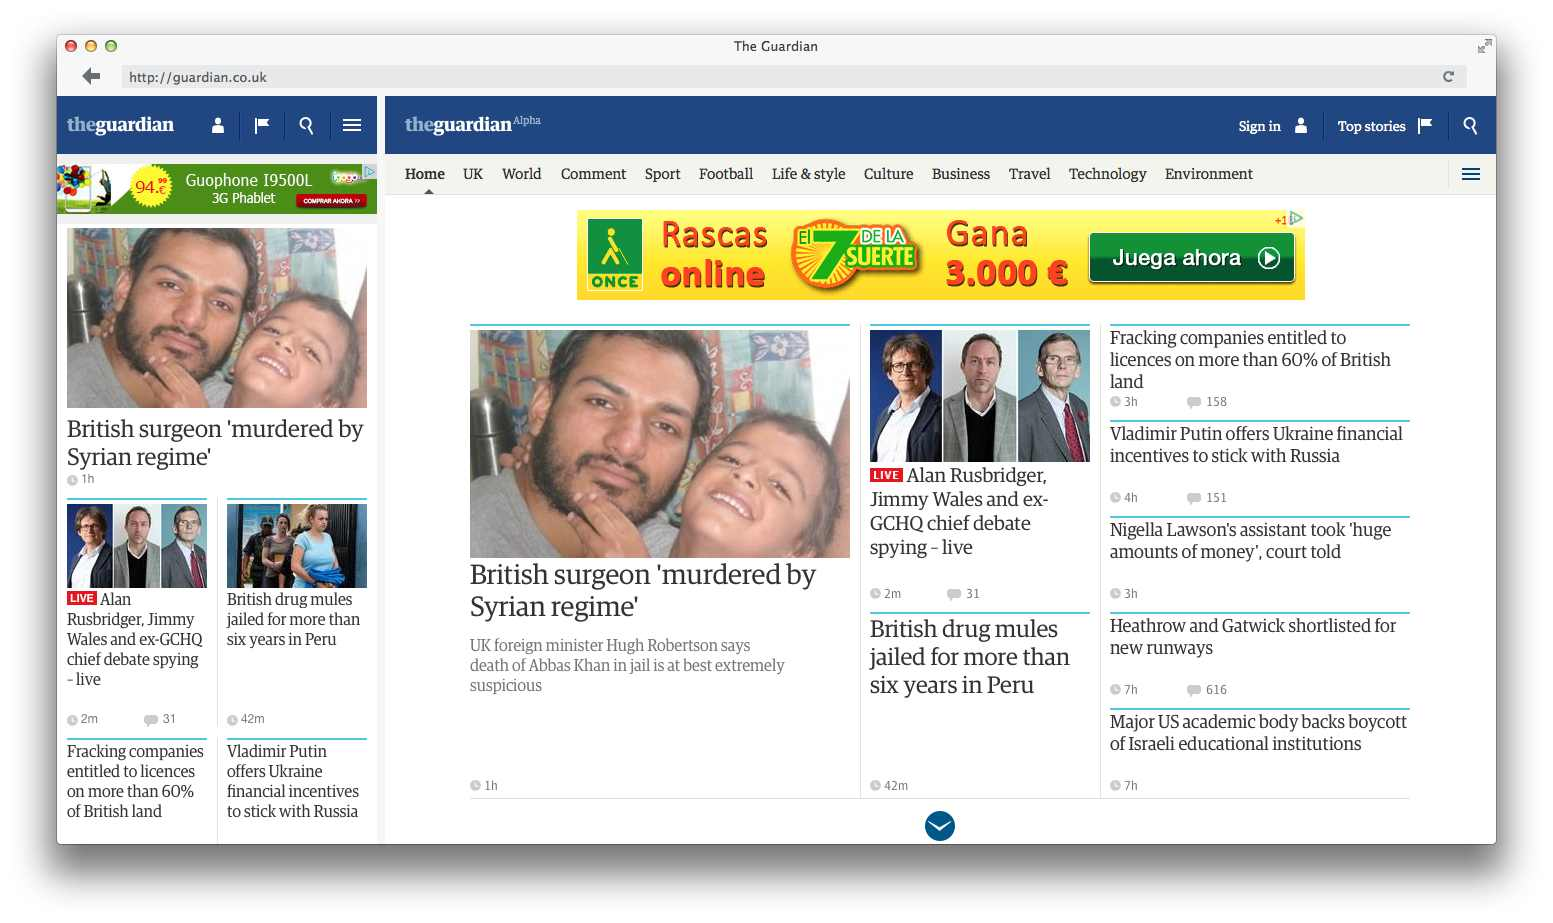 Responsive Guardian homepage shown in Duo browser, with small and large screen versions side by side.